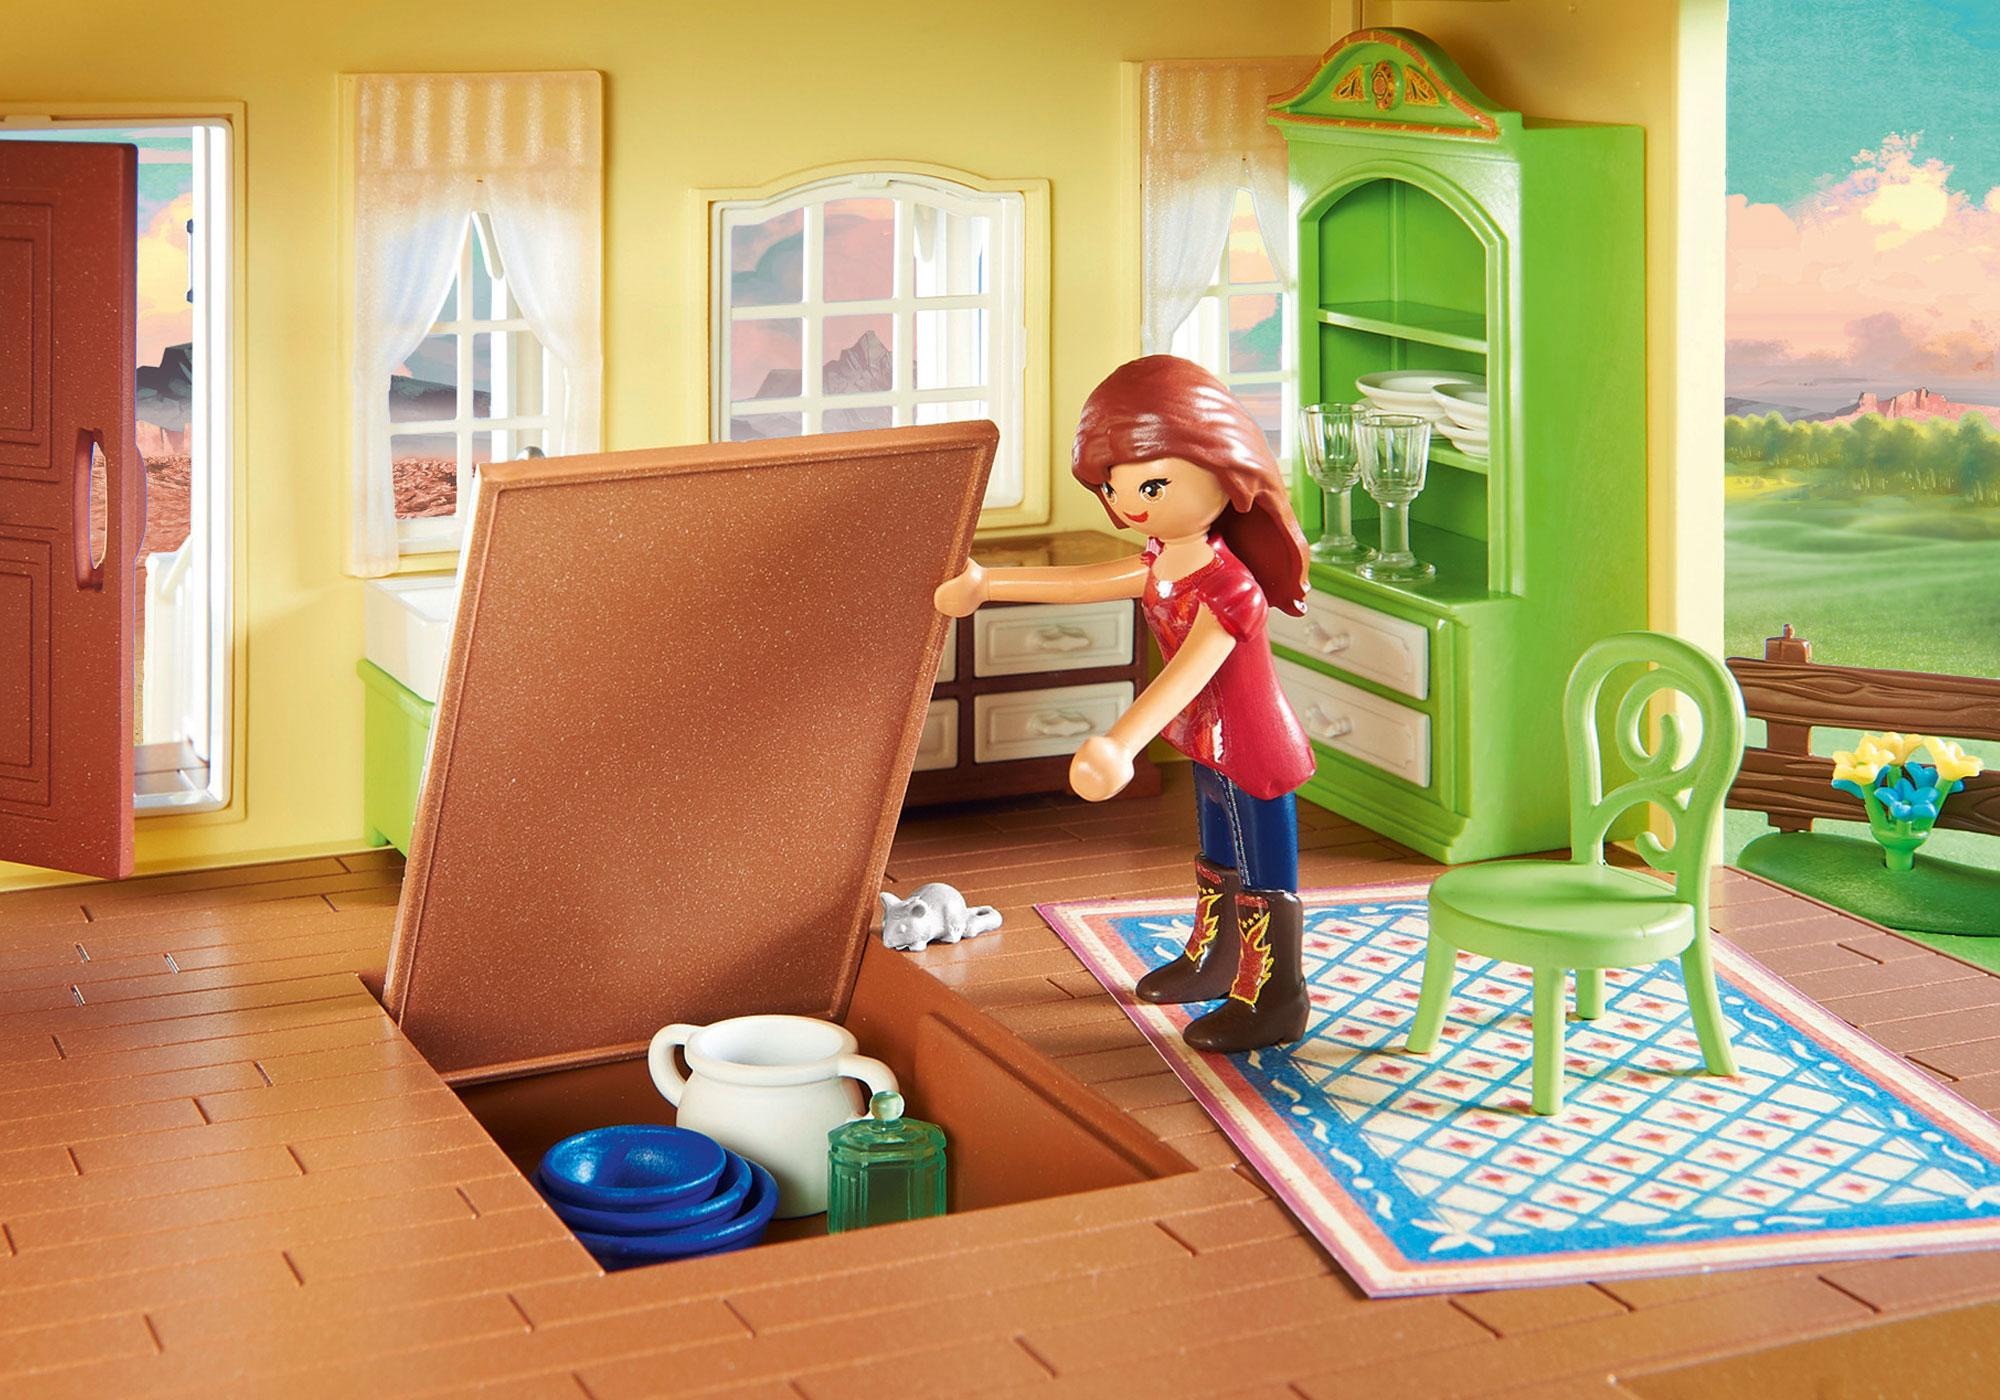 http://media.playmobil.com/i/playmobil/9475_product_extra2/Luckys glückliches Zuhause